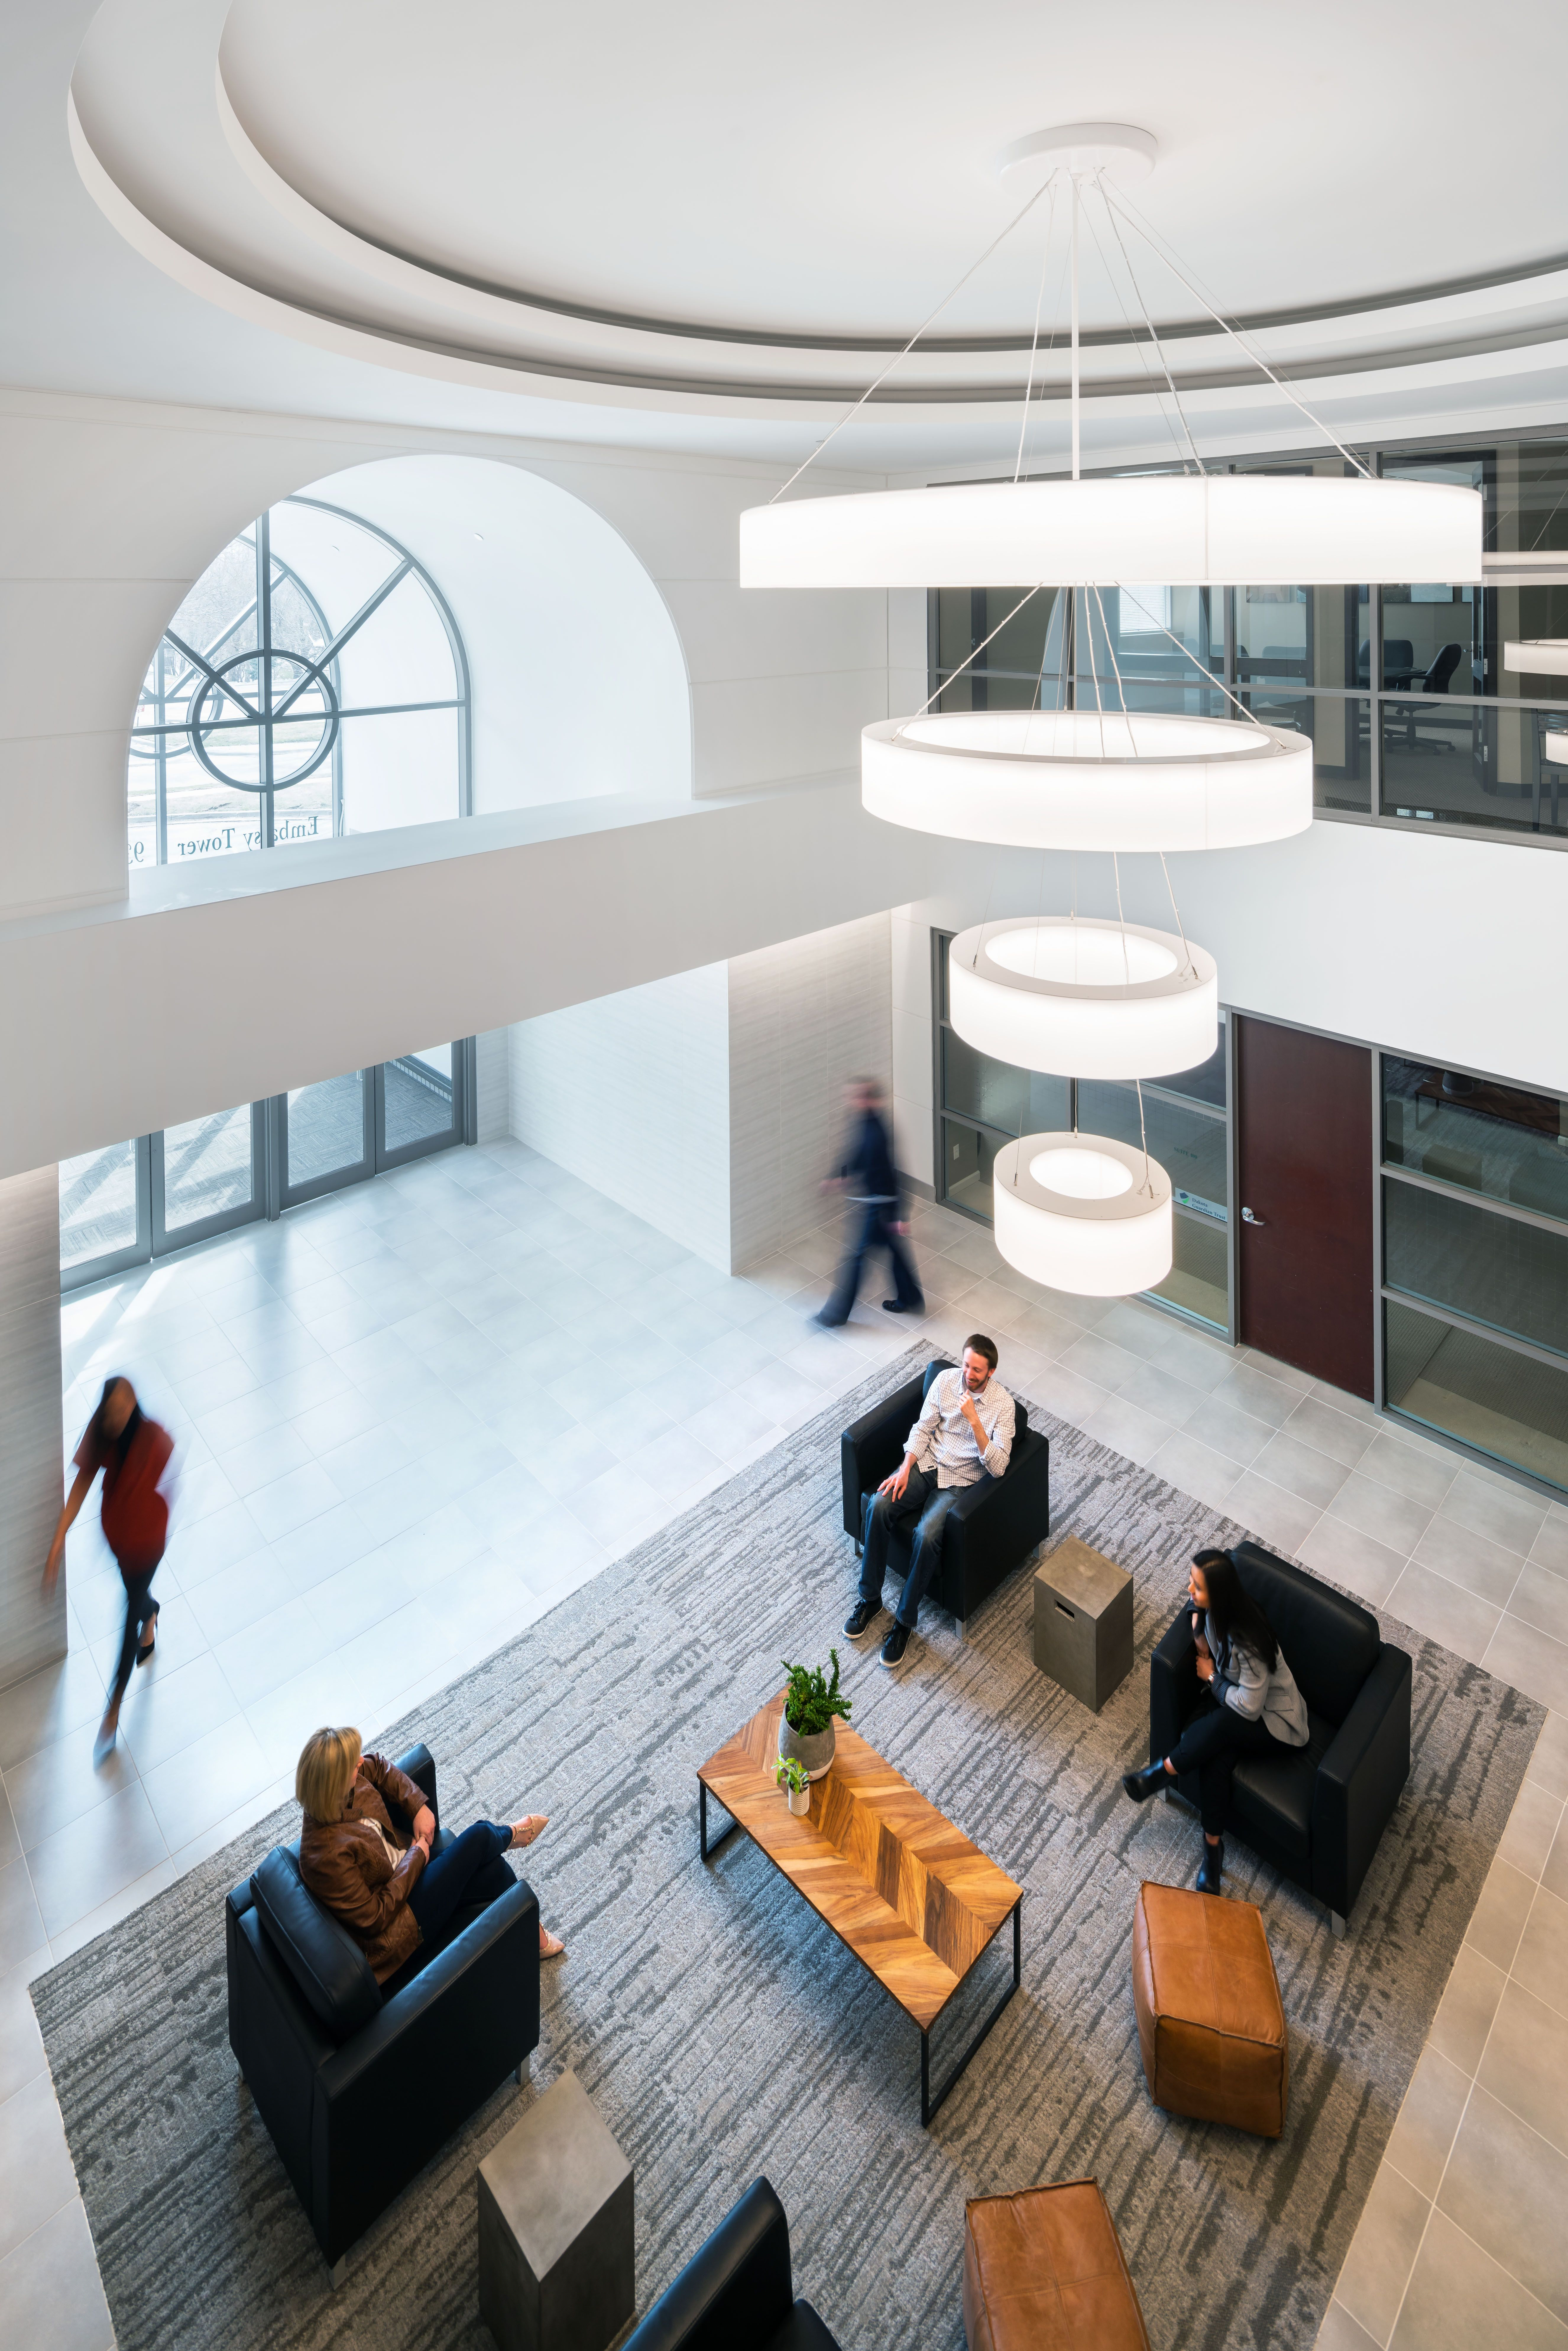 Novato Tier Chandelier is a statement fixture in a lobby, while also delivering performance and reducing need for additional fixtures in space